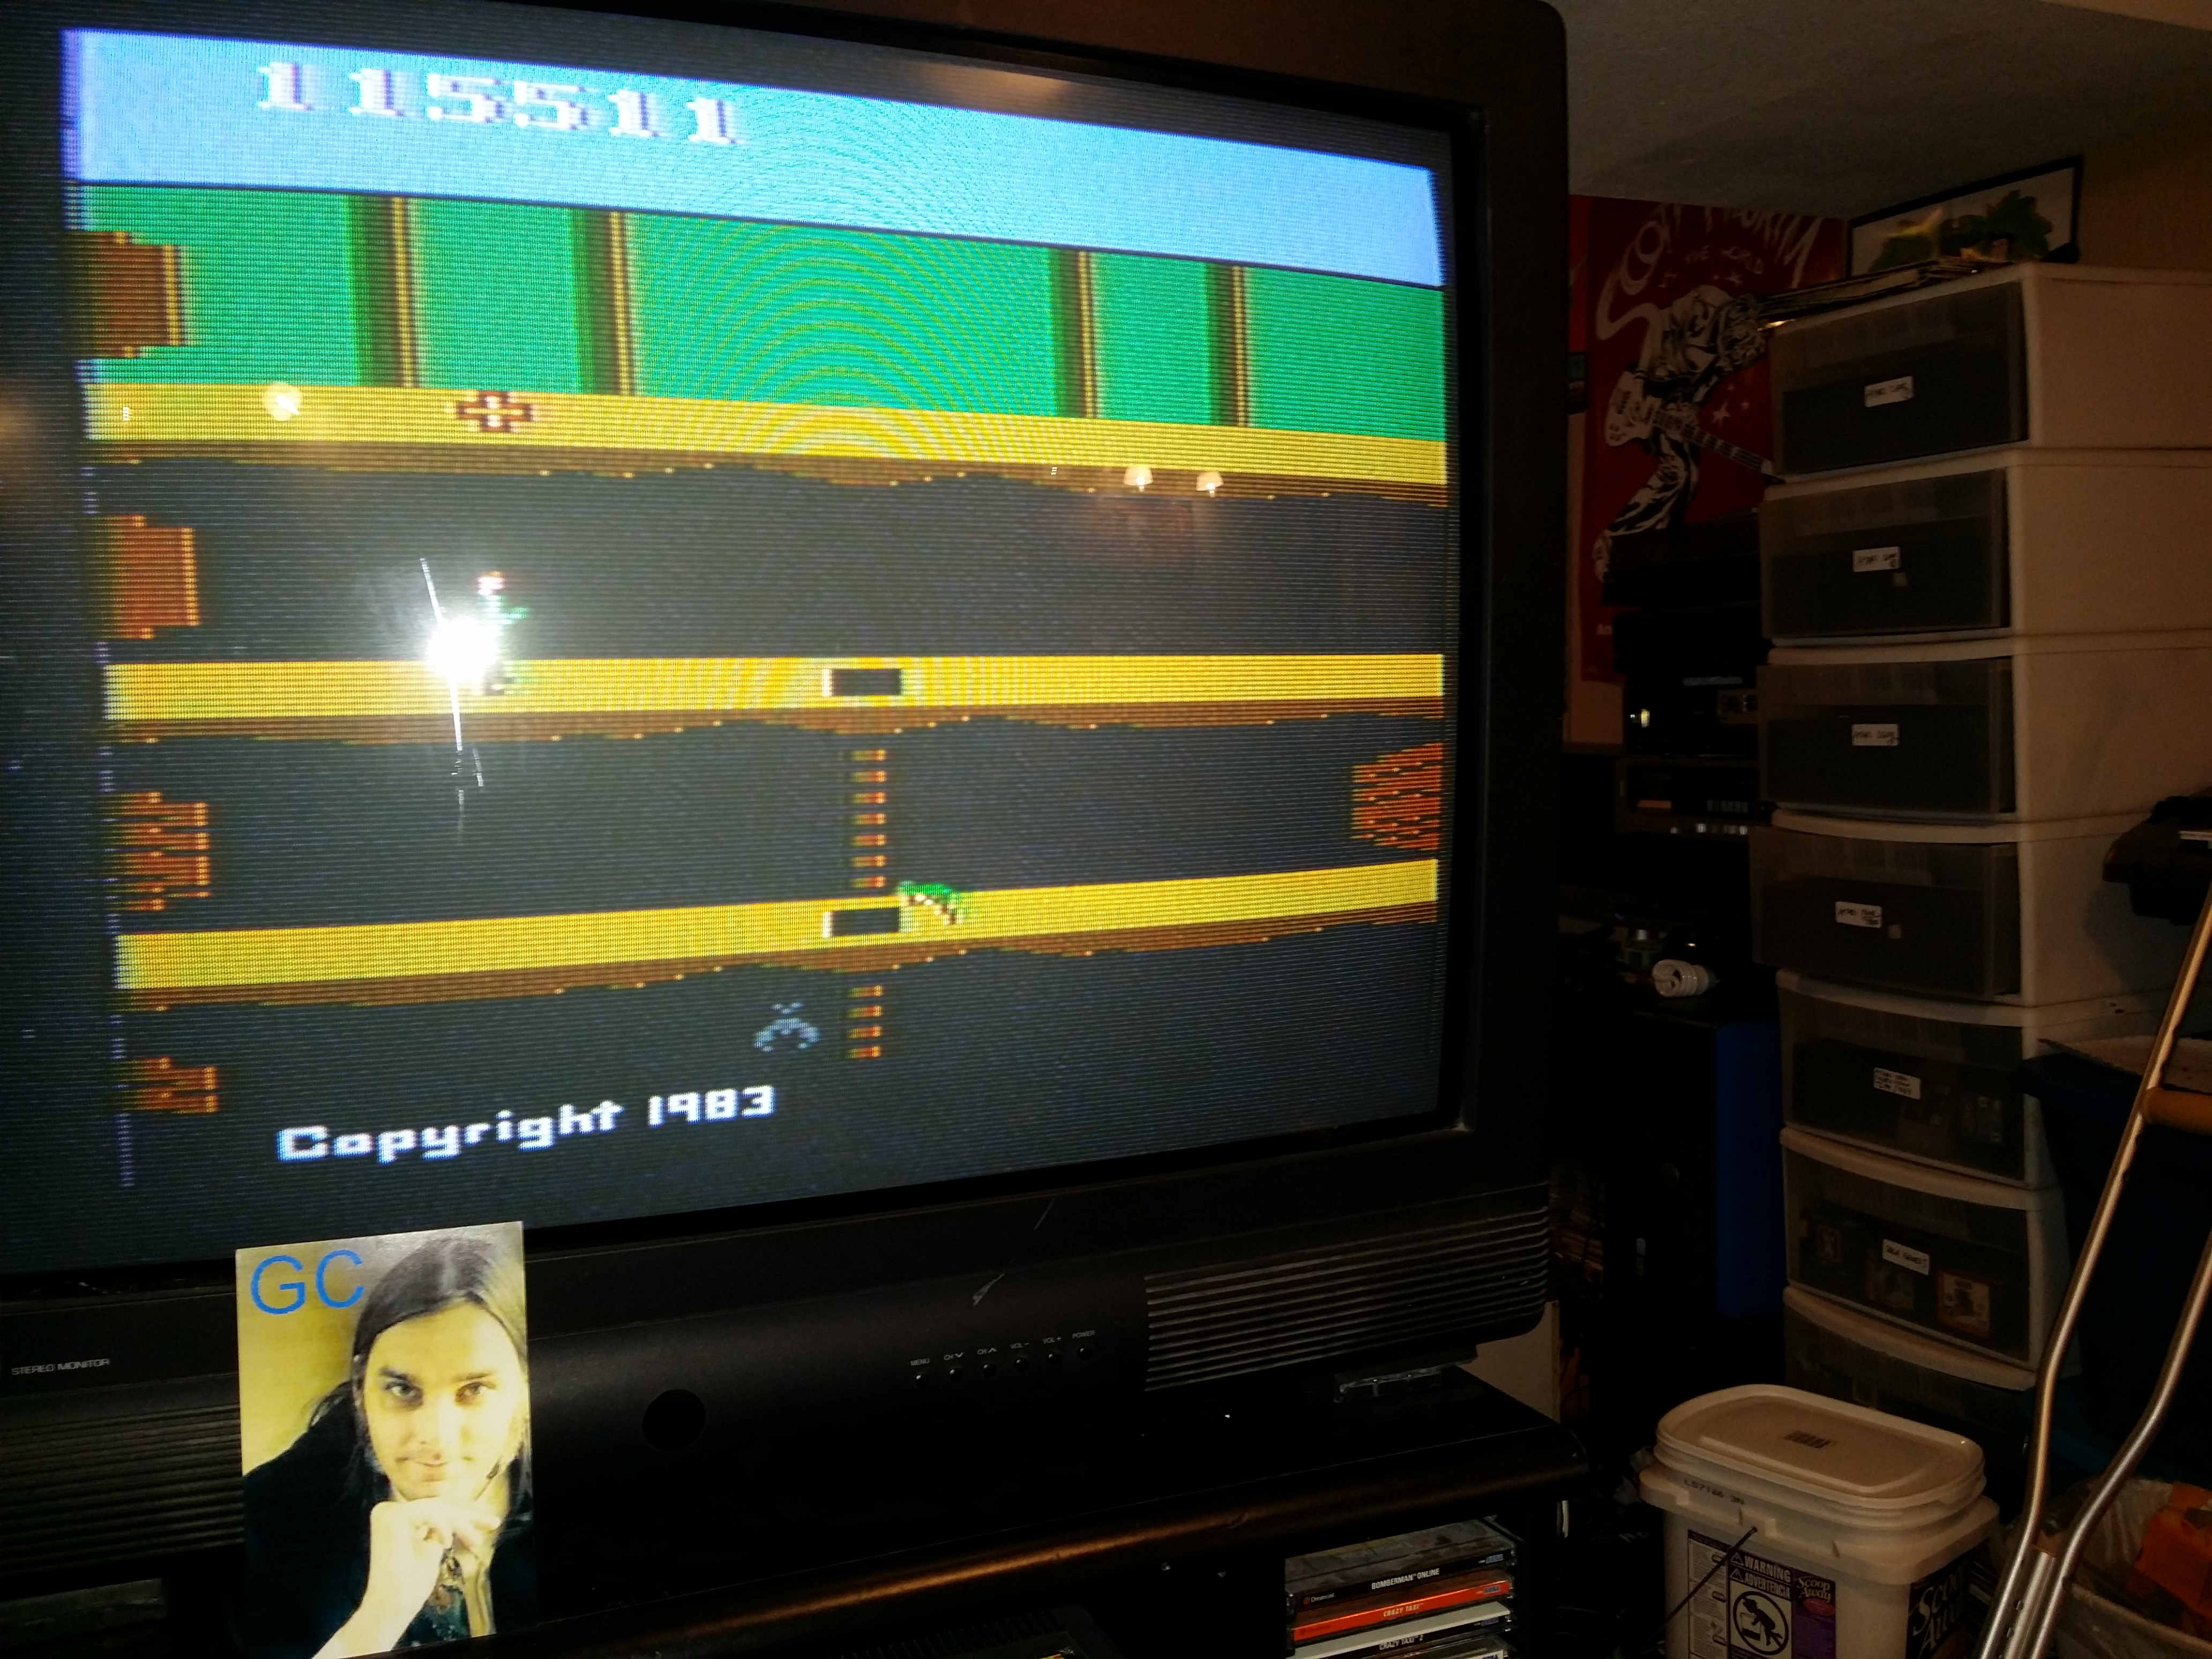 glenncase: Pitfall II: Lost Caverns (Atari 2600) 115,511 points on 2014-09-25 08:06:32